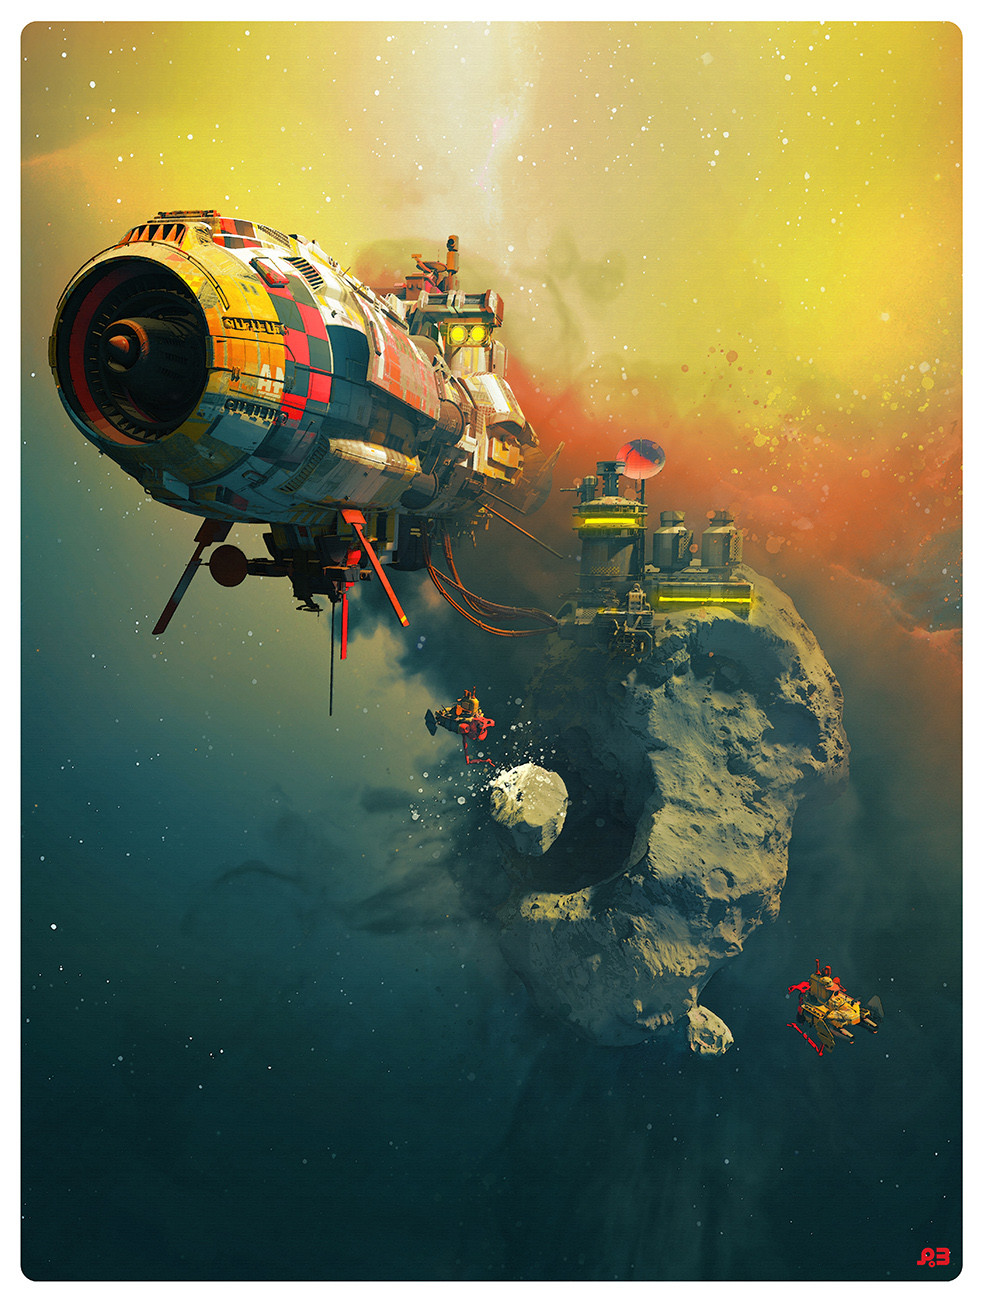 Pascal blanche foss station77 low